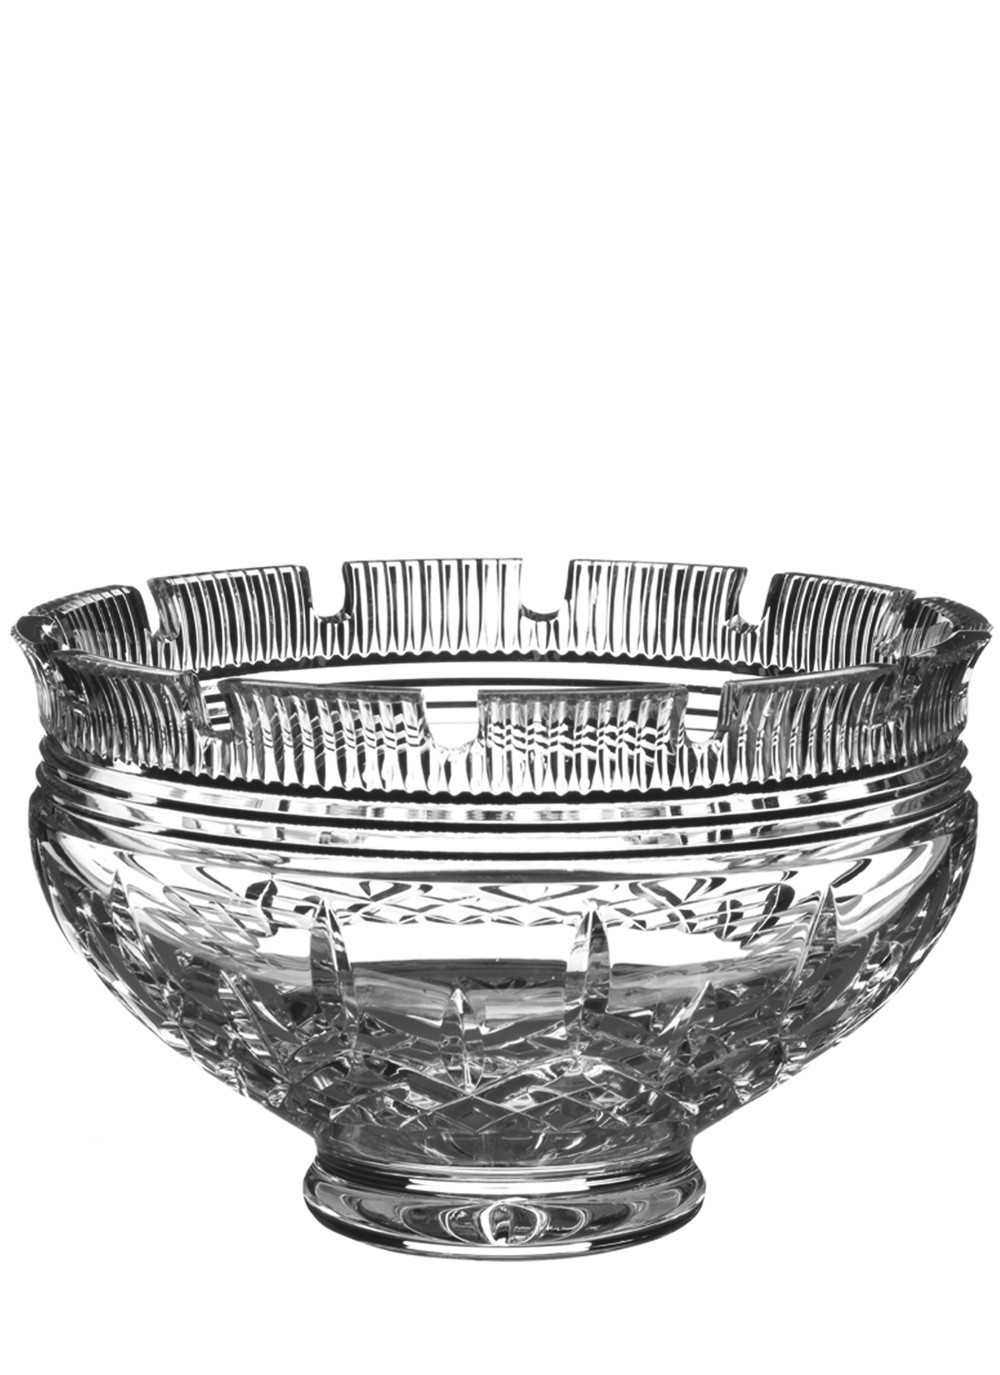 Waterford crystal lismore 10 inch castle bowl blarney waterford crystal lismore 10 castle bowl reviewsmspy